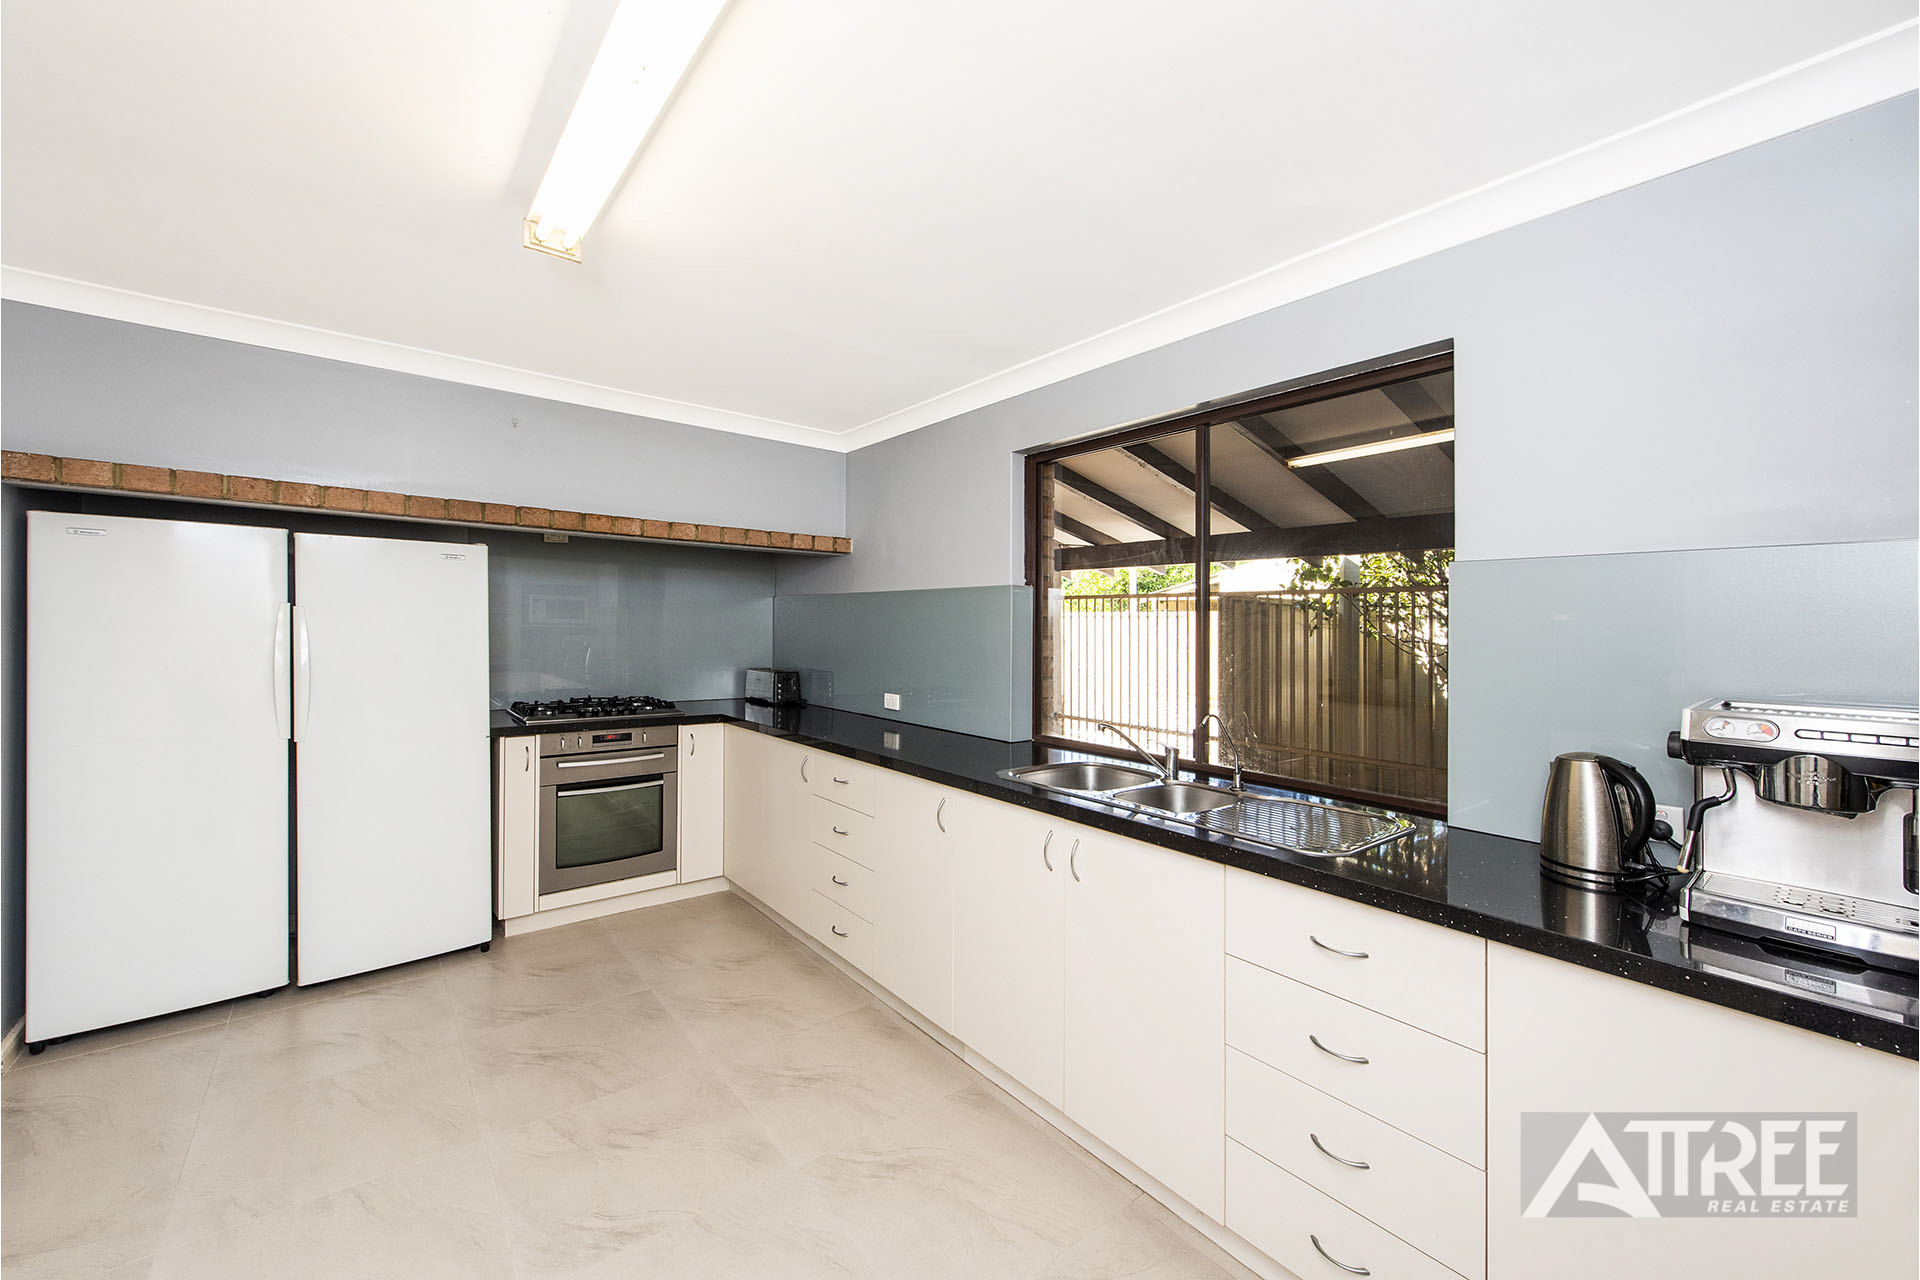 Property for sale in CANNING VALE, 35 Crufts Way : Attree Real Estate